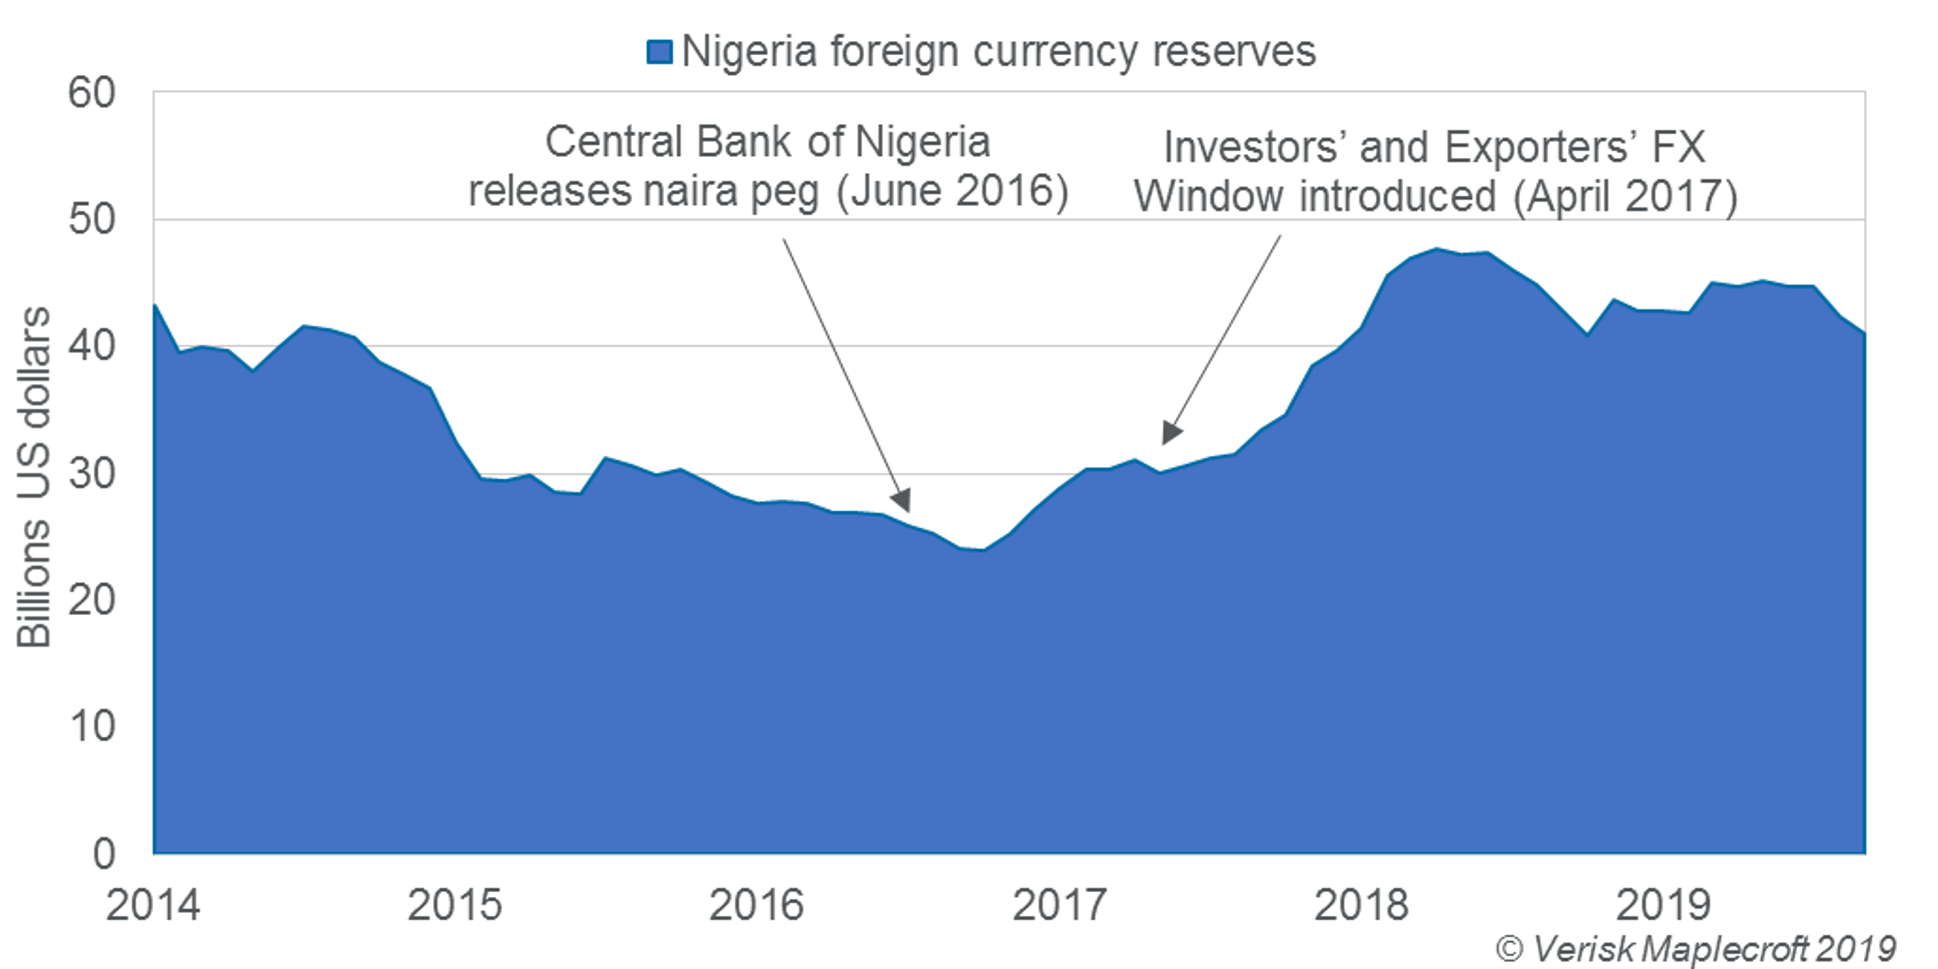 Despite reforms Nigeria's forex reserves remain stuck at 2014 levels